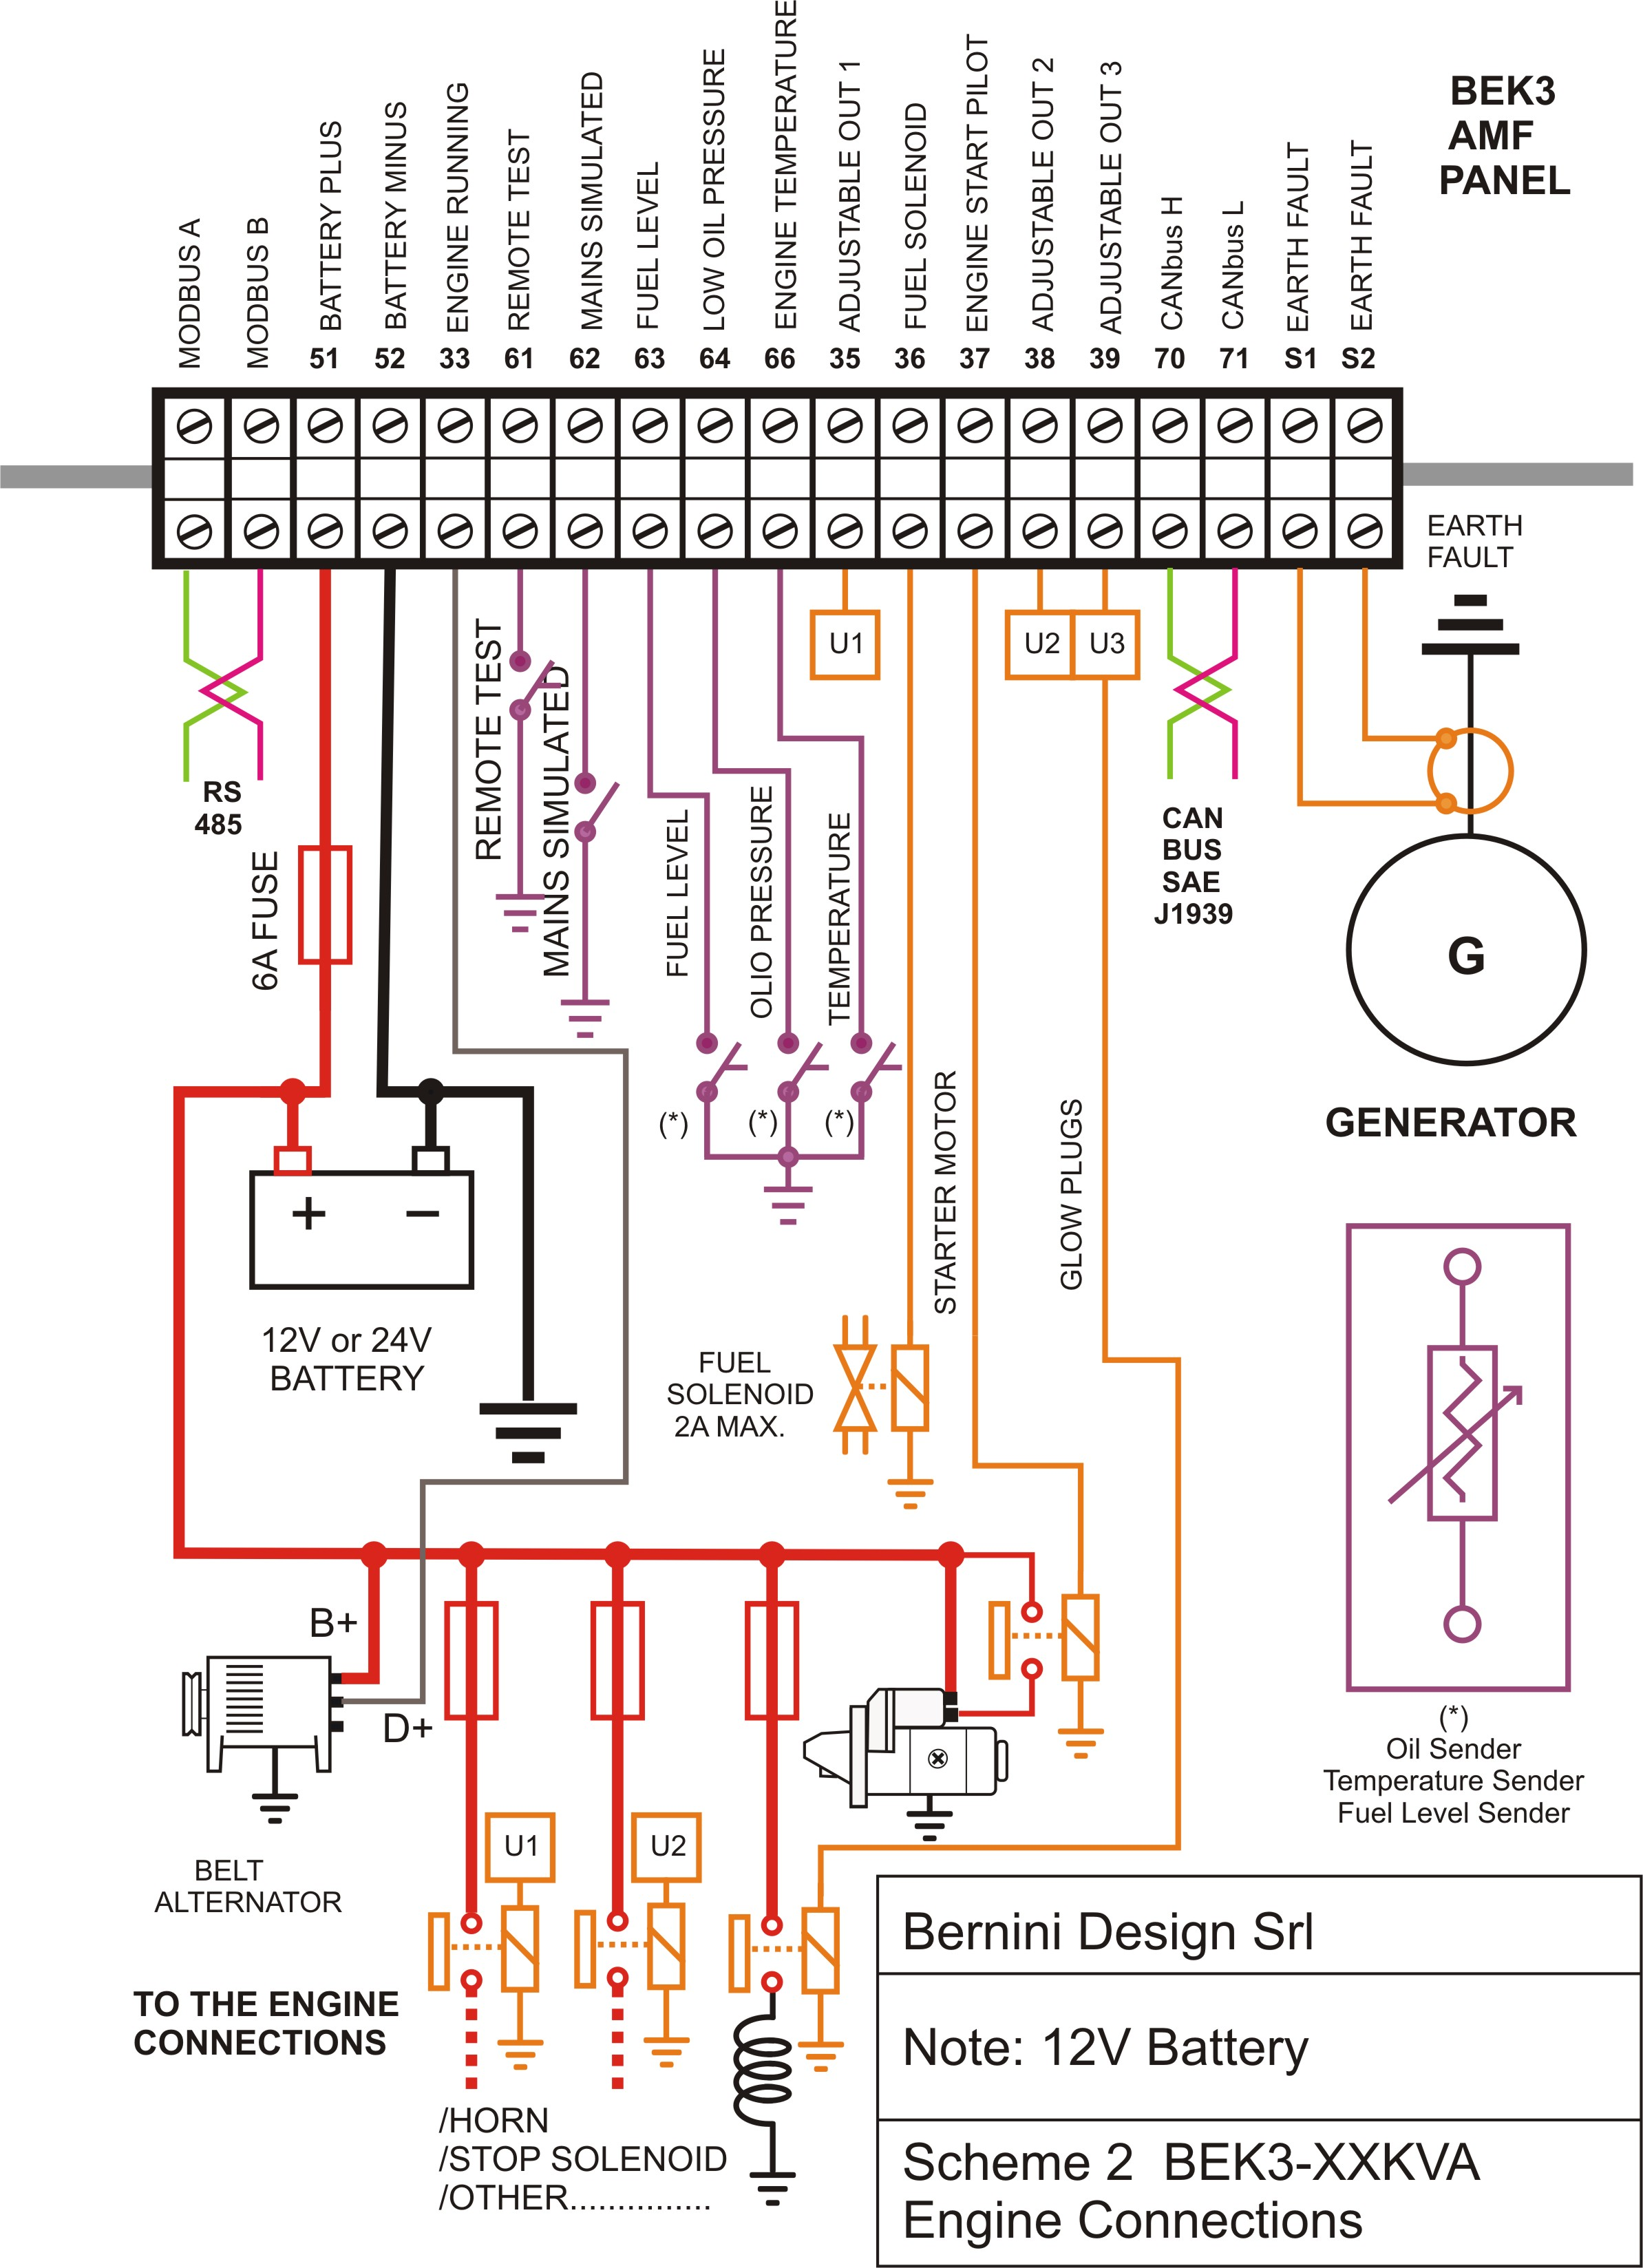 Diesel Generator Control Panel Wiring Diagram Engine Connections wiring diagram generator readingrat net stamford generator wiring diagram manual at edmiracle.co